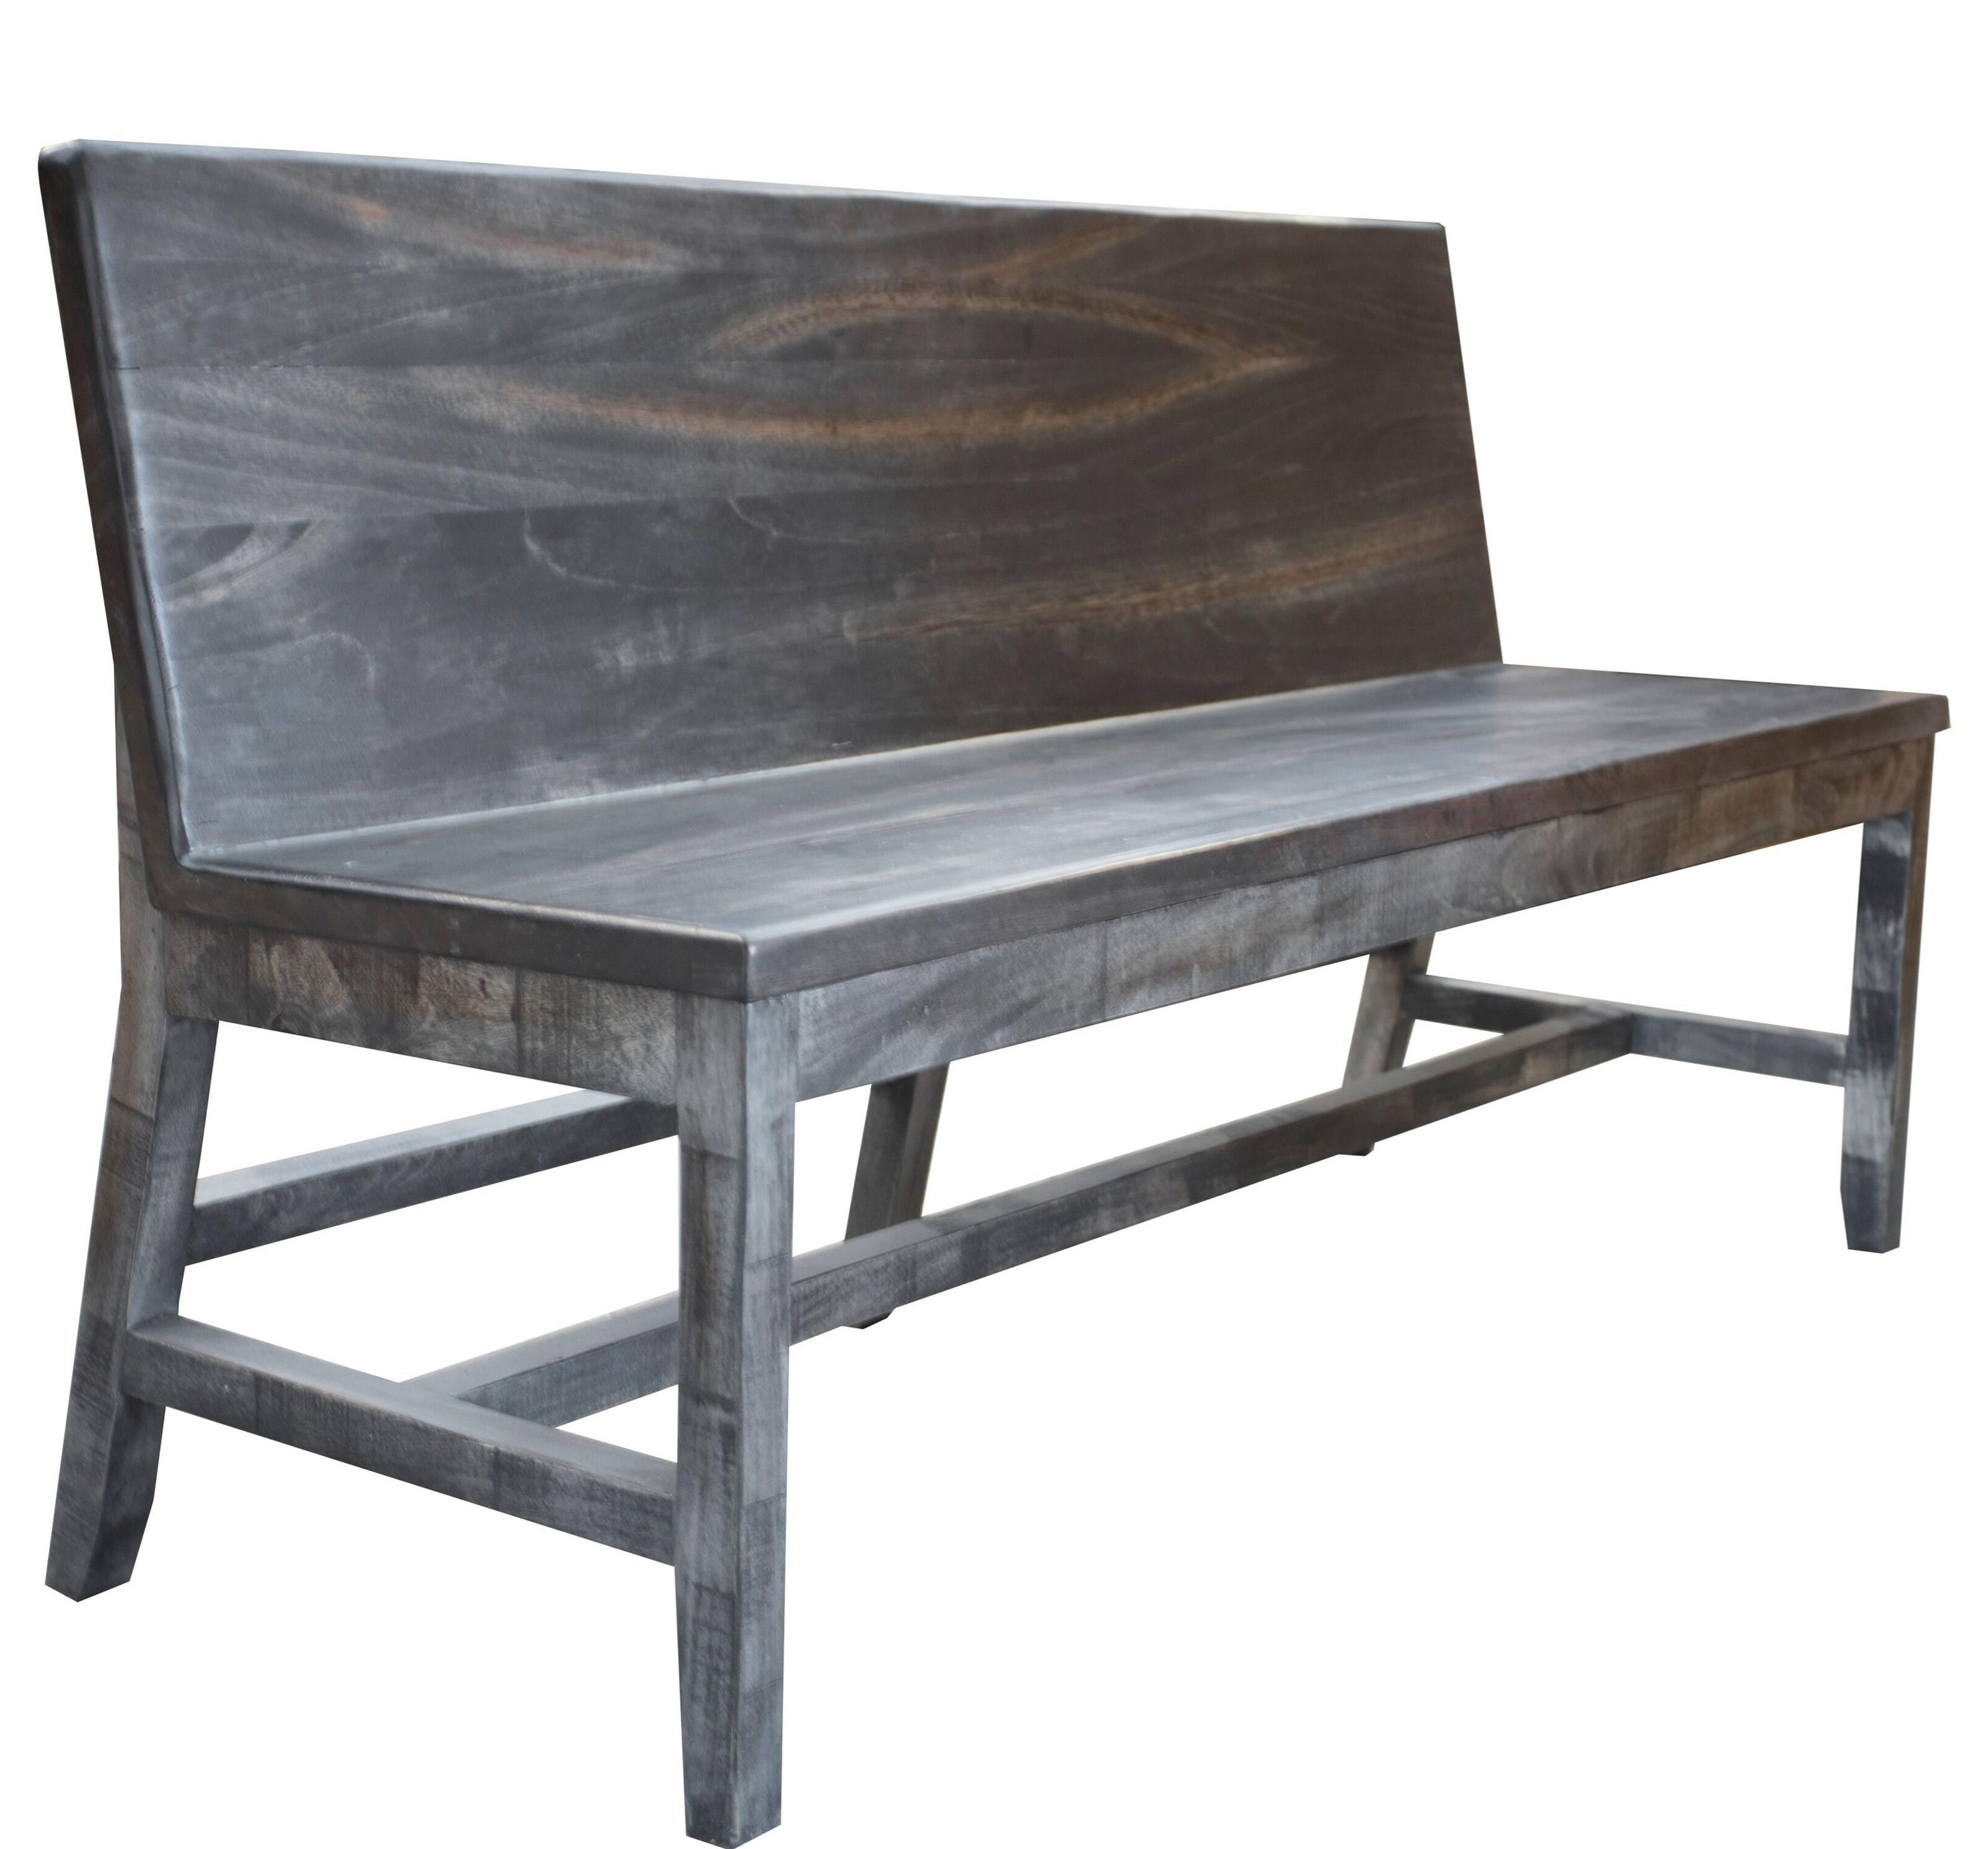 Awe Inspiring Moro Solid Wood Bench With Back Rest Ibusinesslaw Wood Chair Design Ideas Ibusinesslaworg